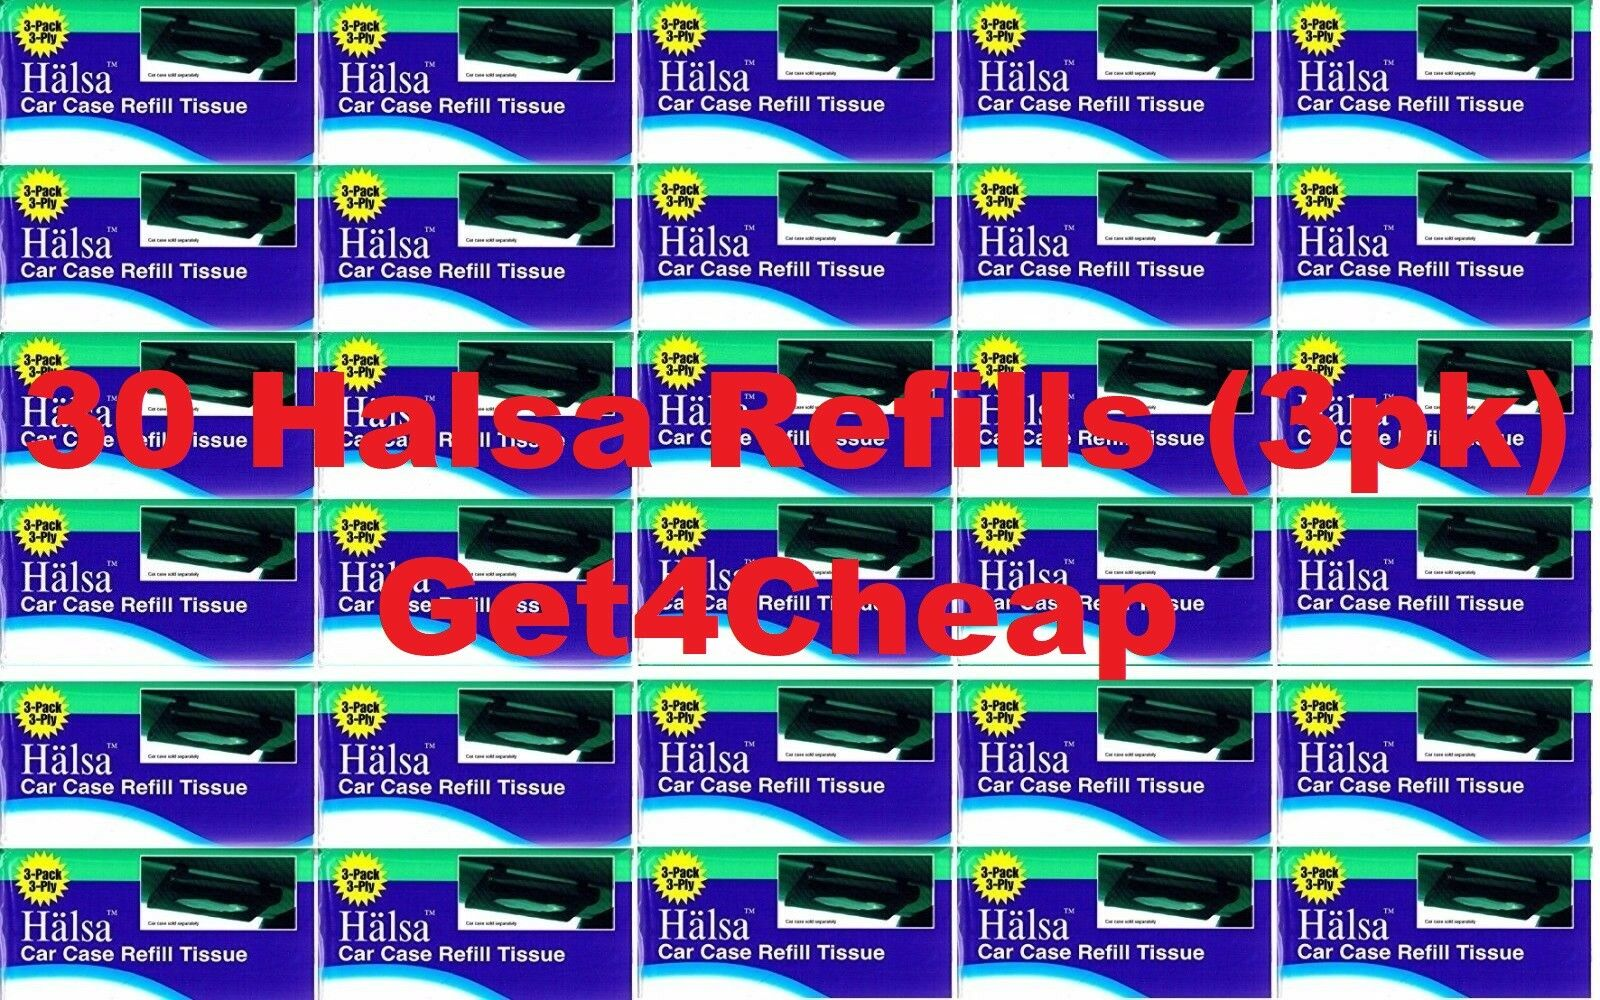 30 x 3pk = 90 SEALED HALSA TISSUES REFILLS CAR WIPE TEMPO VISOR TISSUE KLEENEX